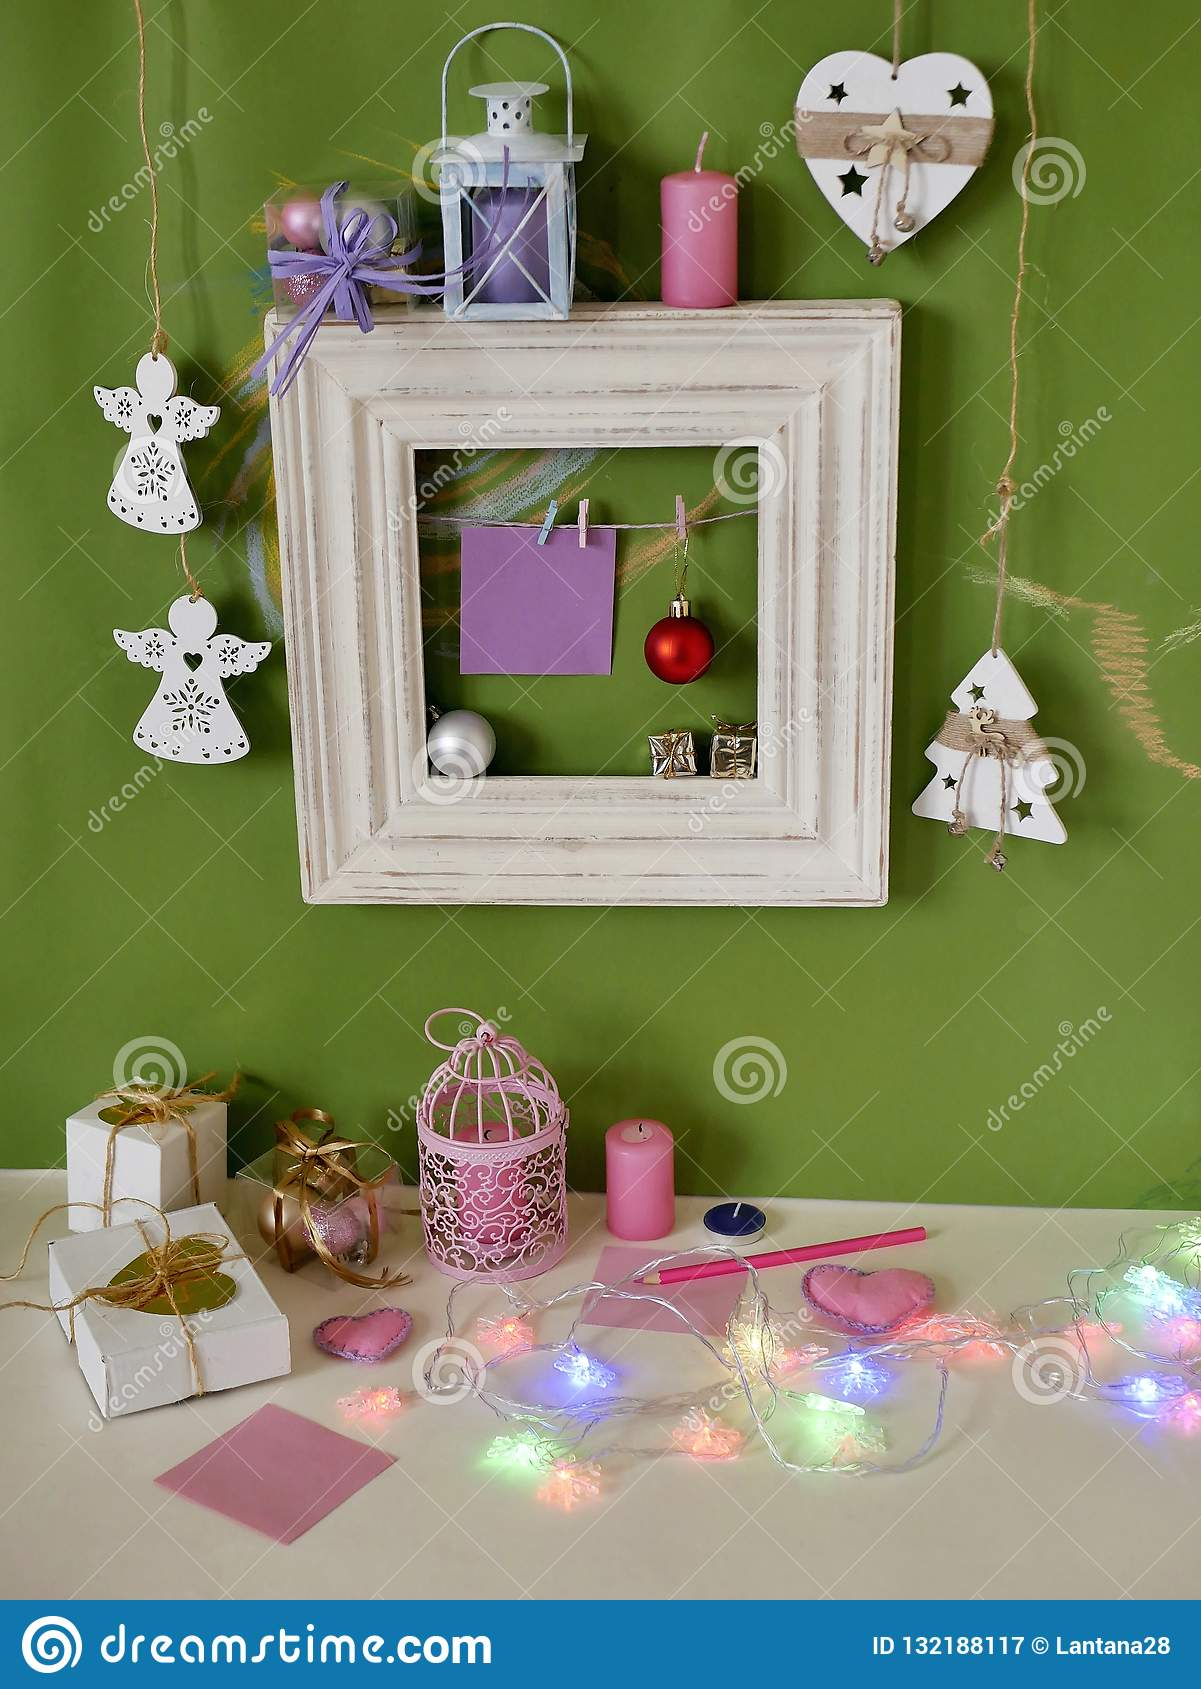 Wooden Vintage Frame With Decor On A Green Background